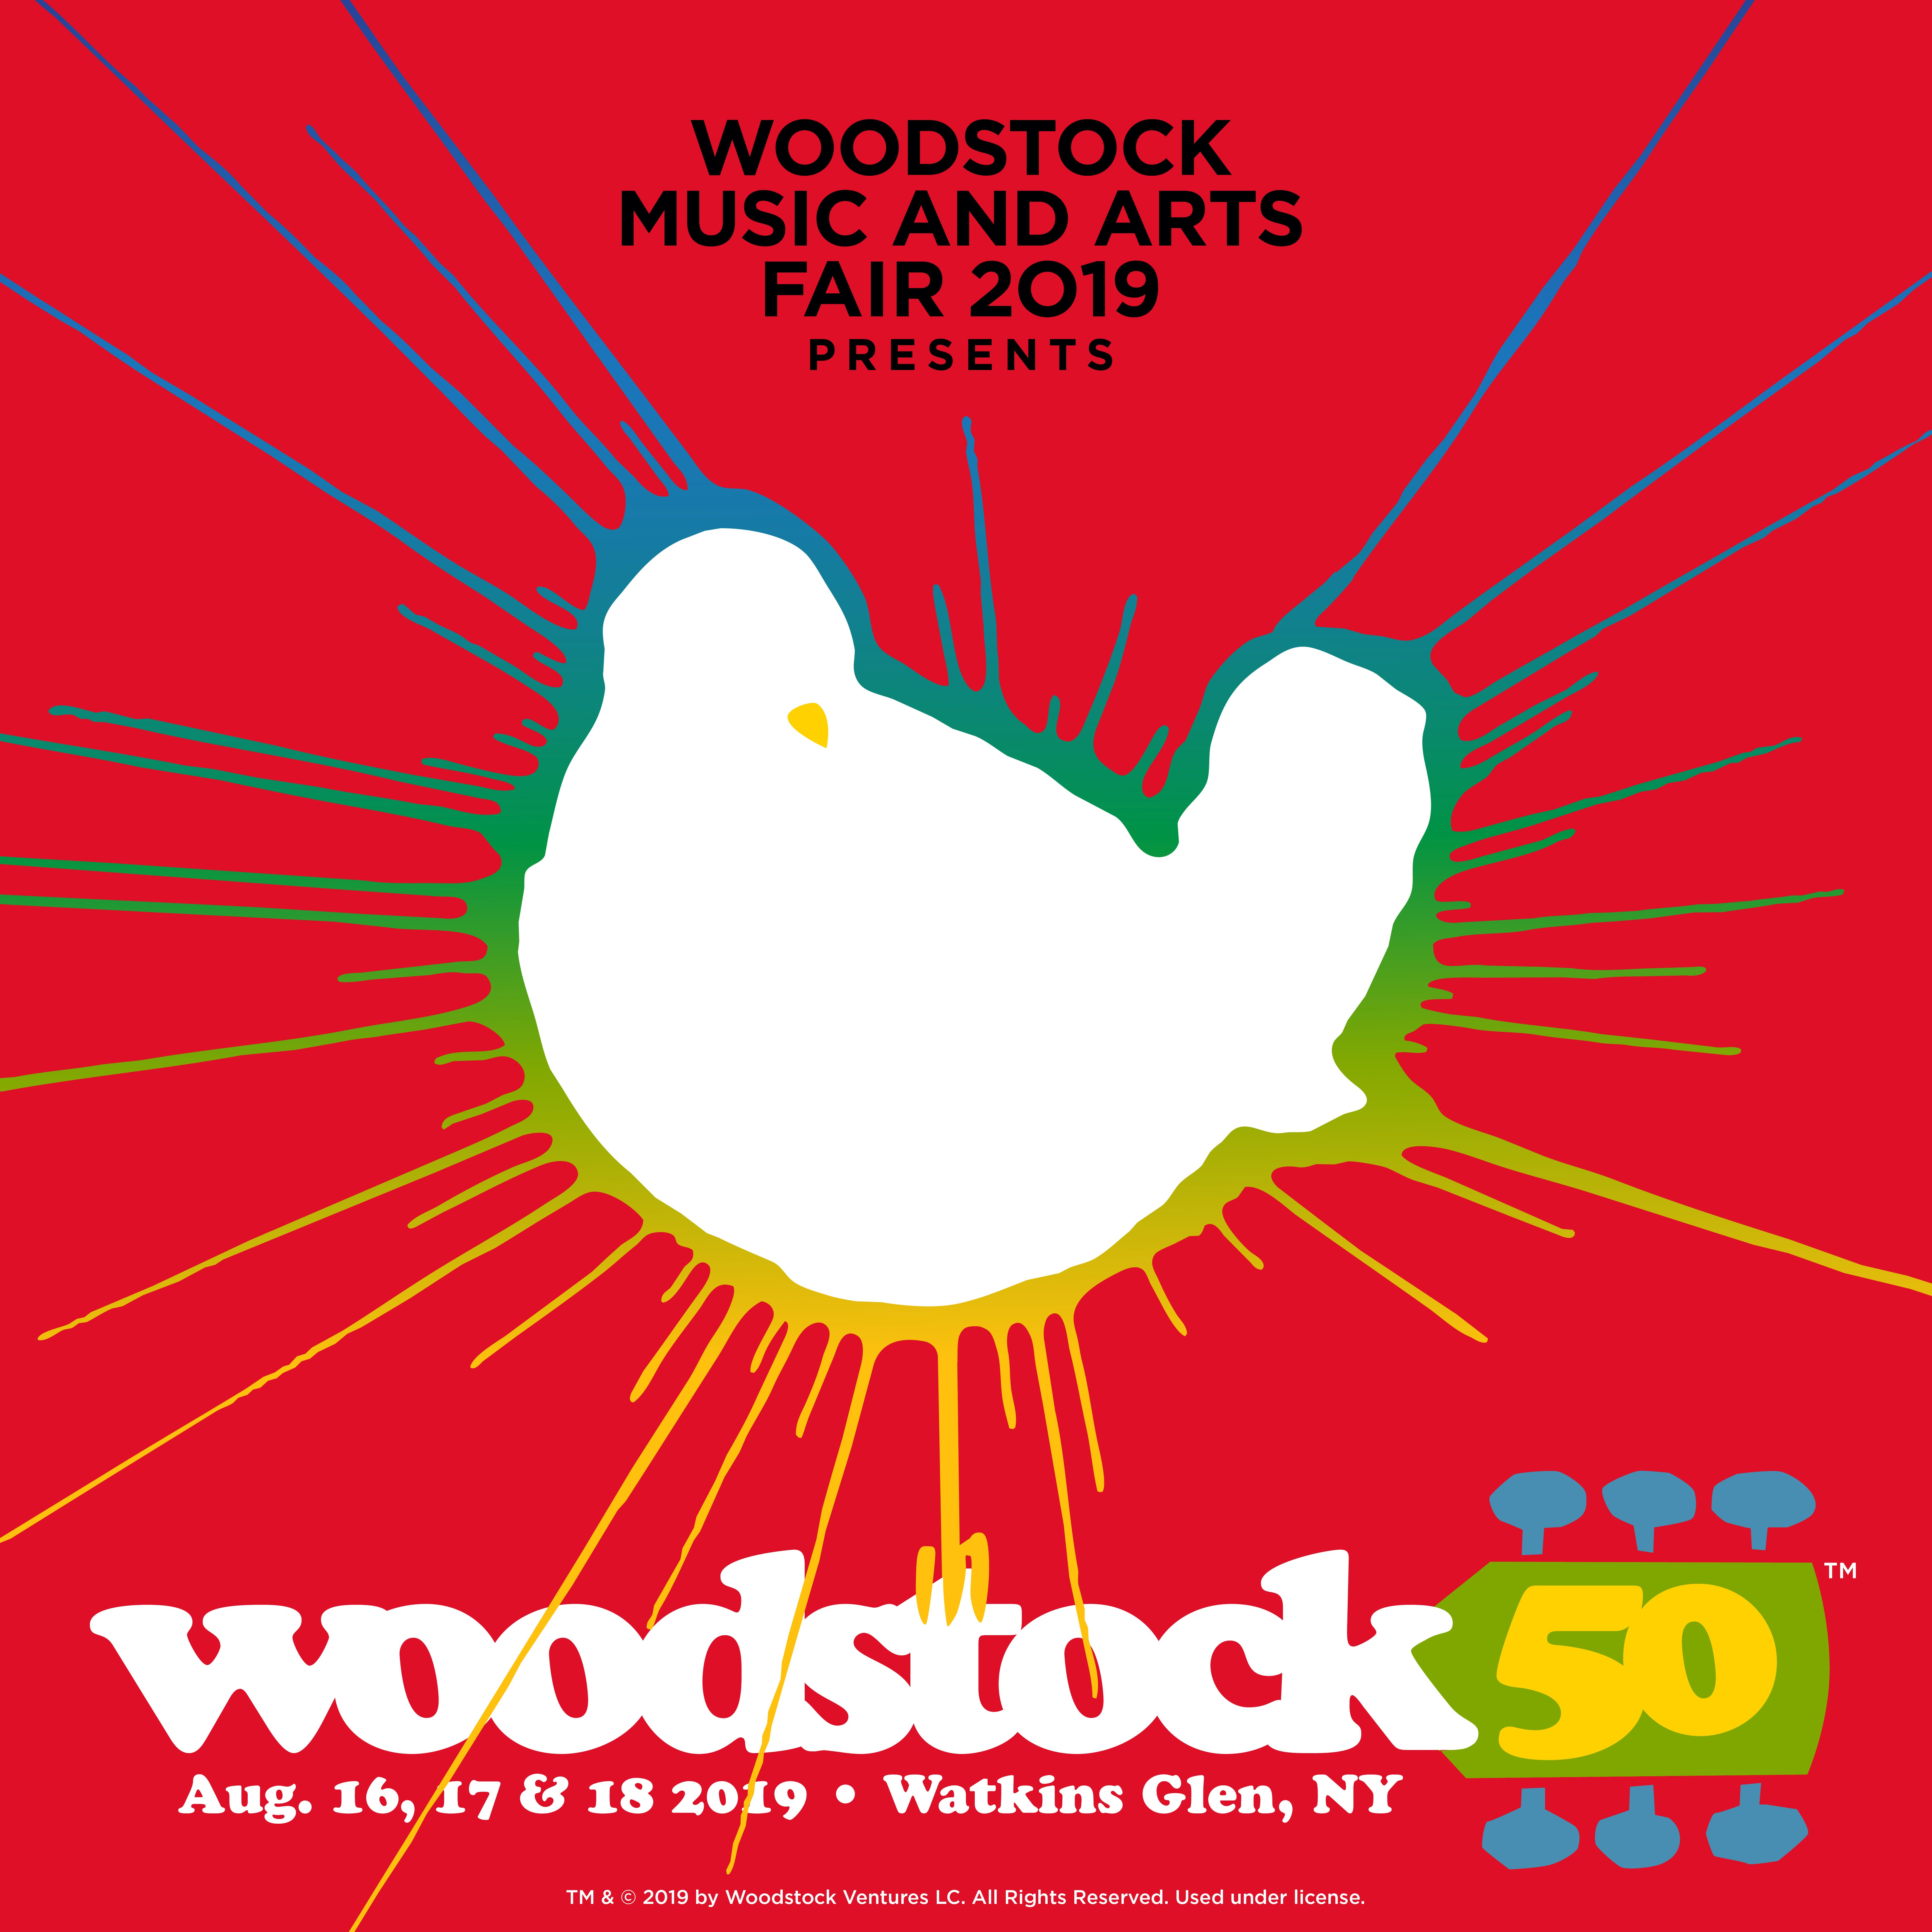 Woodstock 50: Ticket sales date pushed back; pricing details still unknown